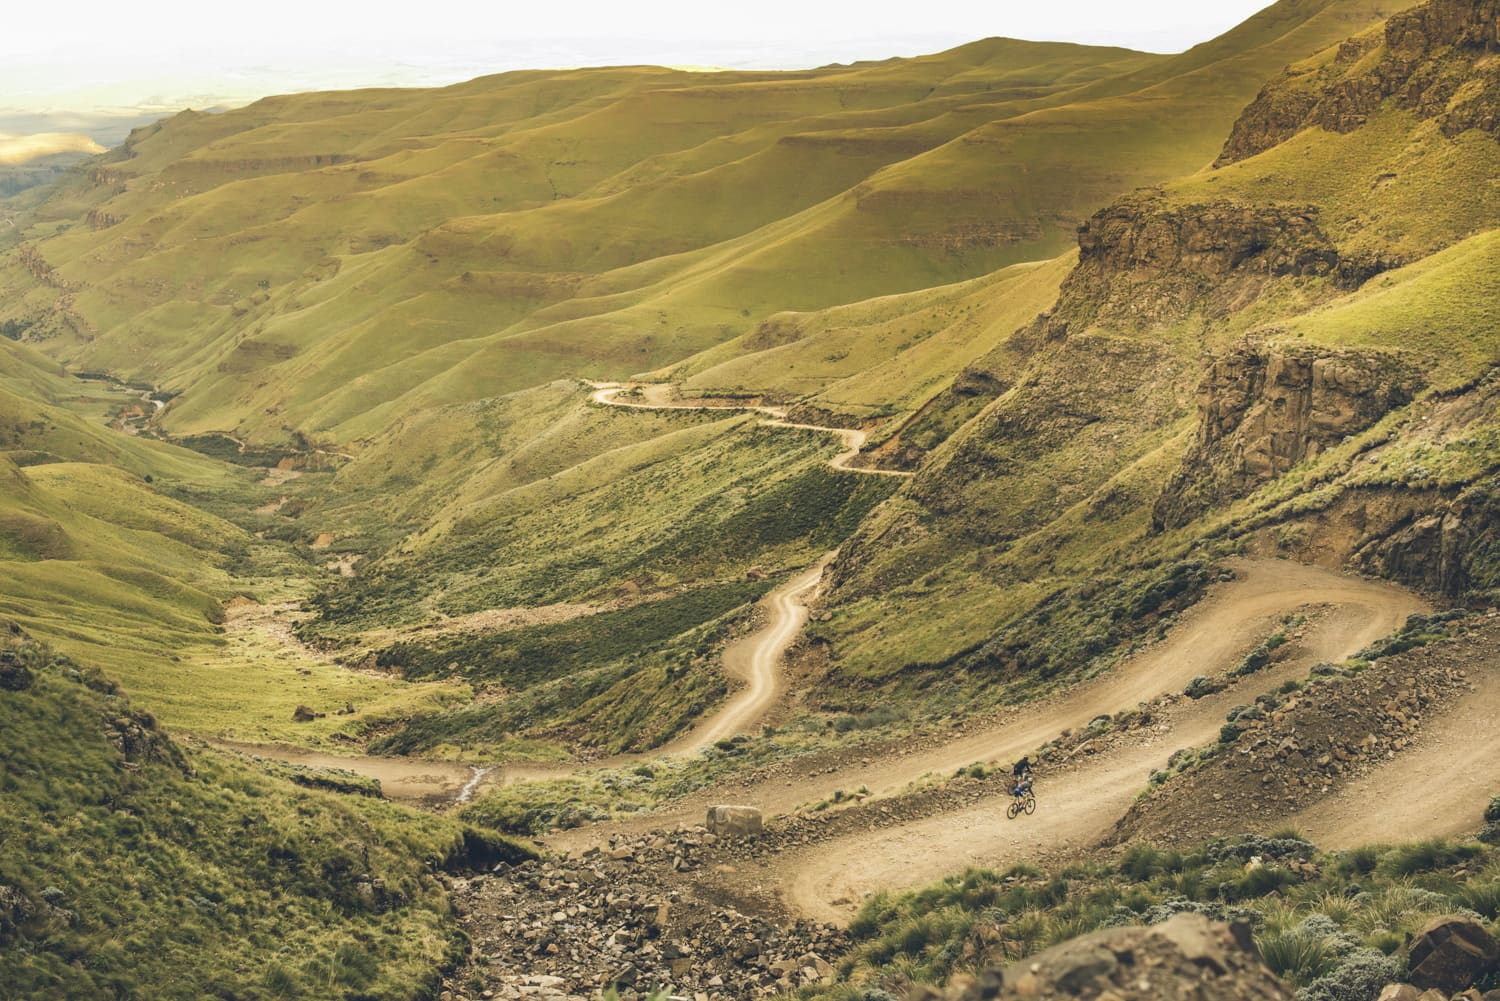 sani-pass-desmond-louw-bicycling-magazine-wowrides-0101